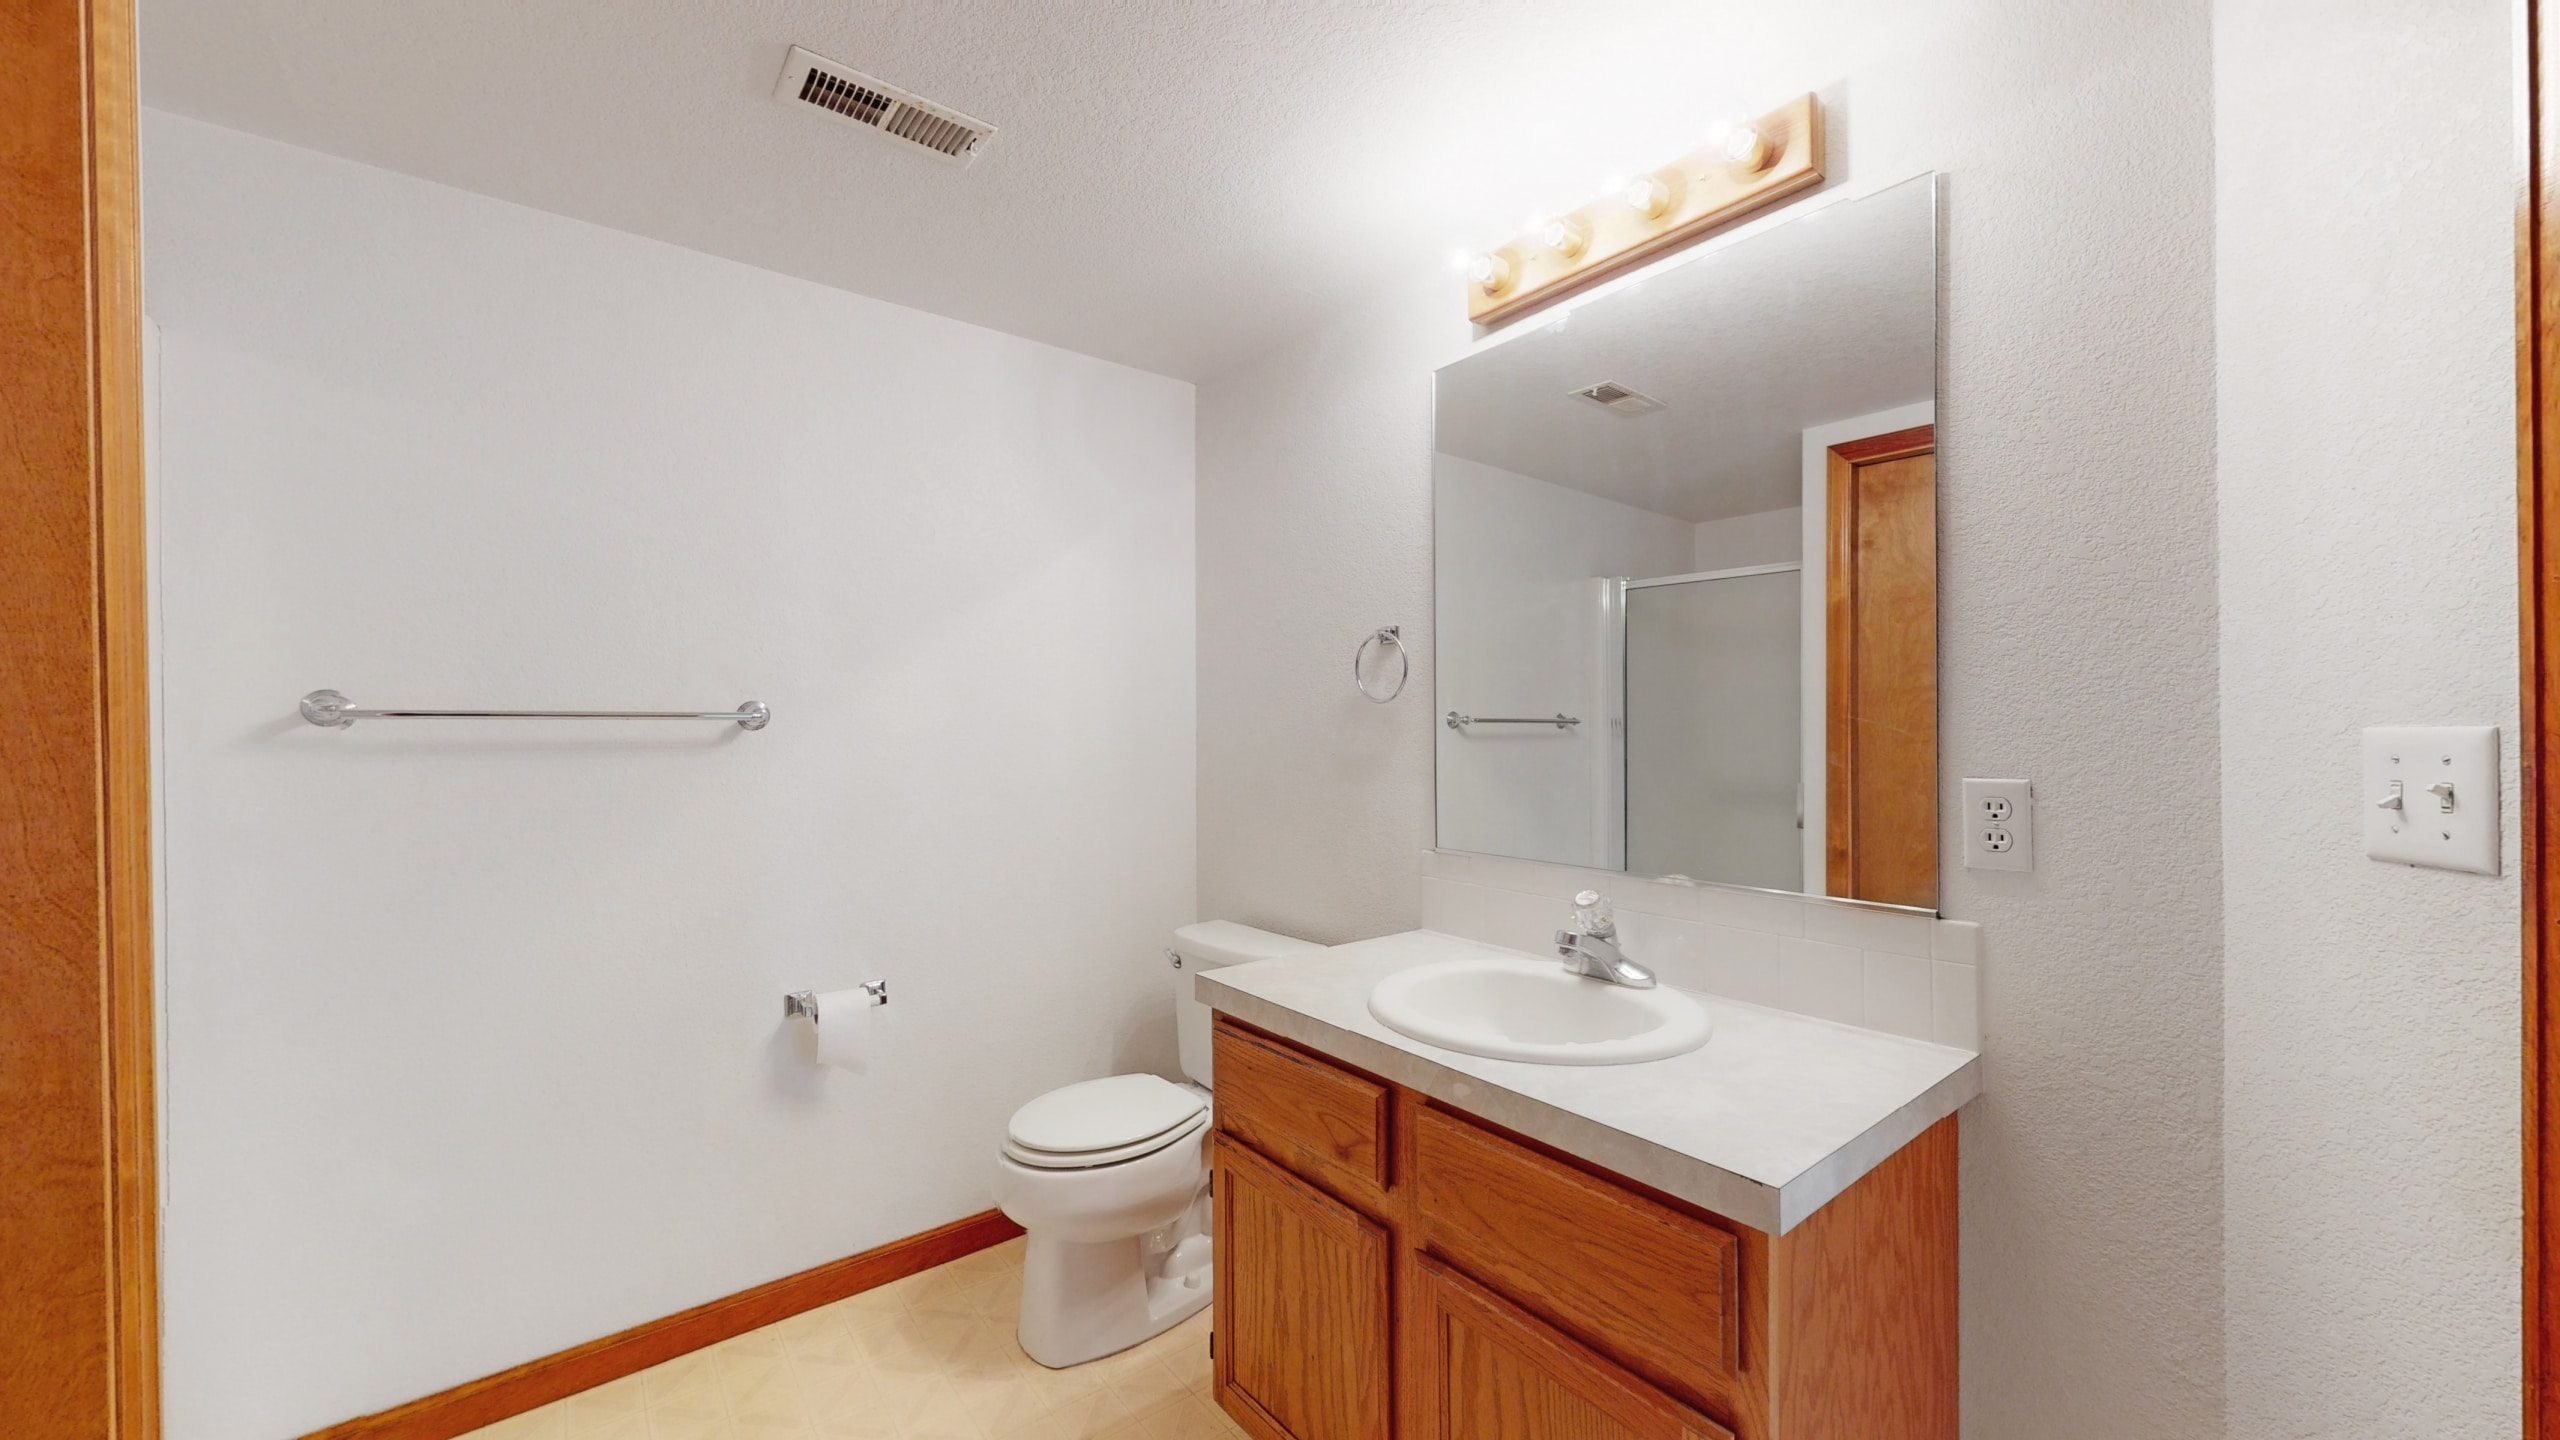 Brighton house for sale downstairs bathroom with white tile shower and laminate counters